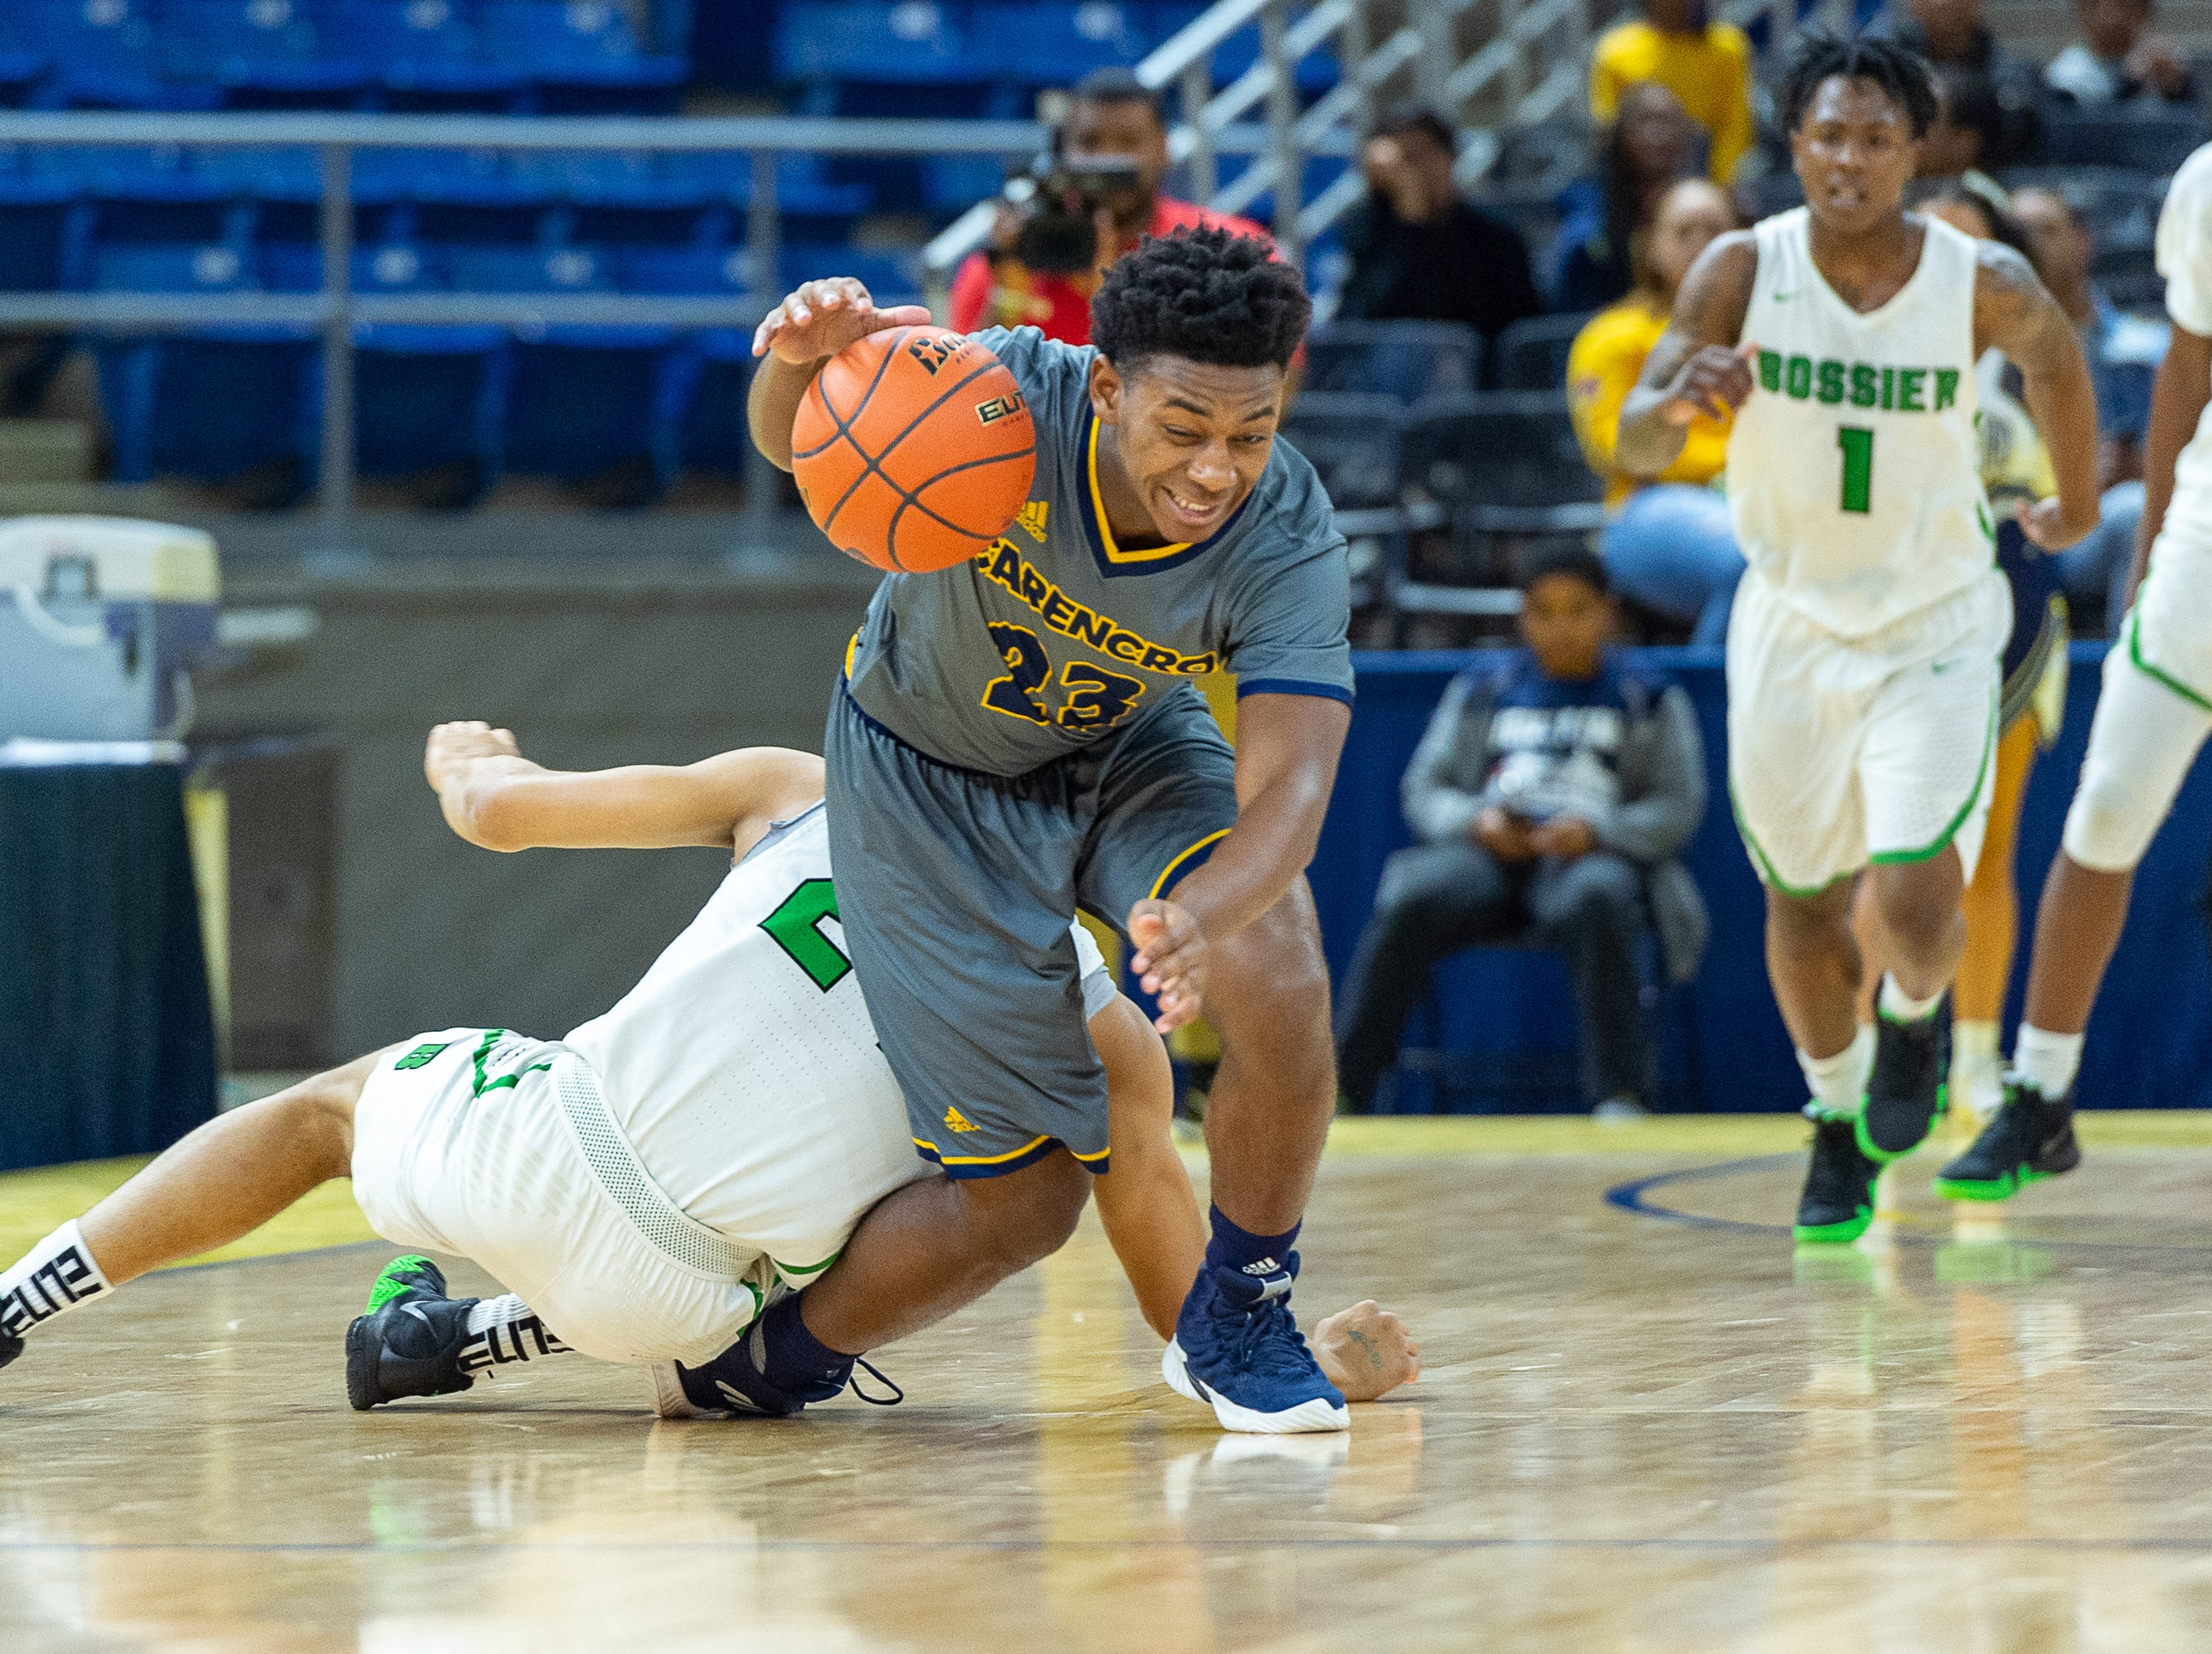 Lucas Williams is fouled as Carencro falls to Bossier in the Semi Final round of the LHSAA State Championships. Tuesday, March 5, 2019.